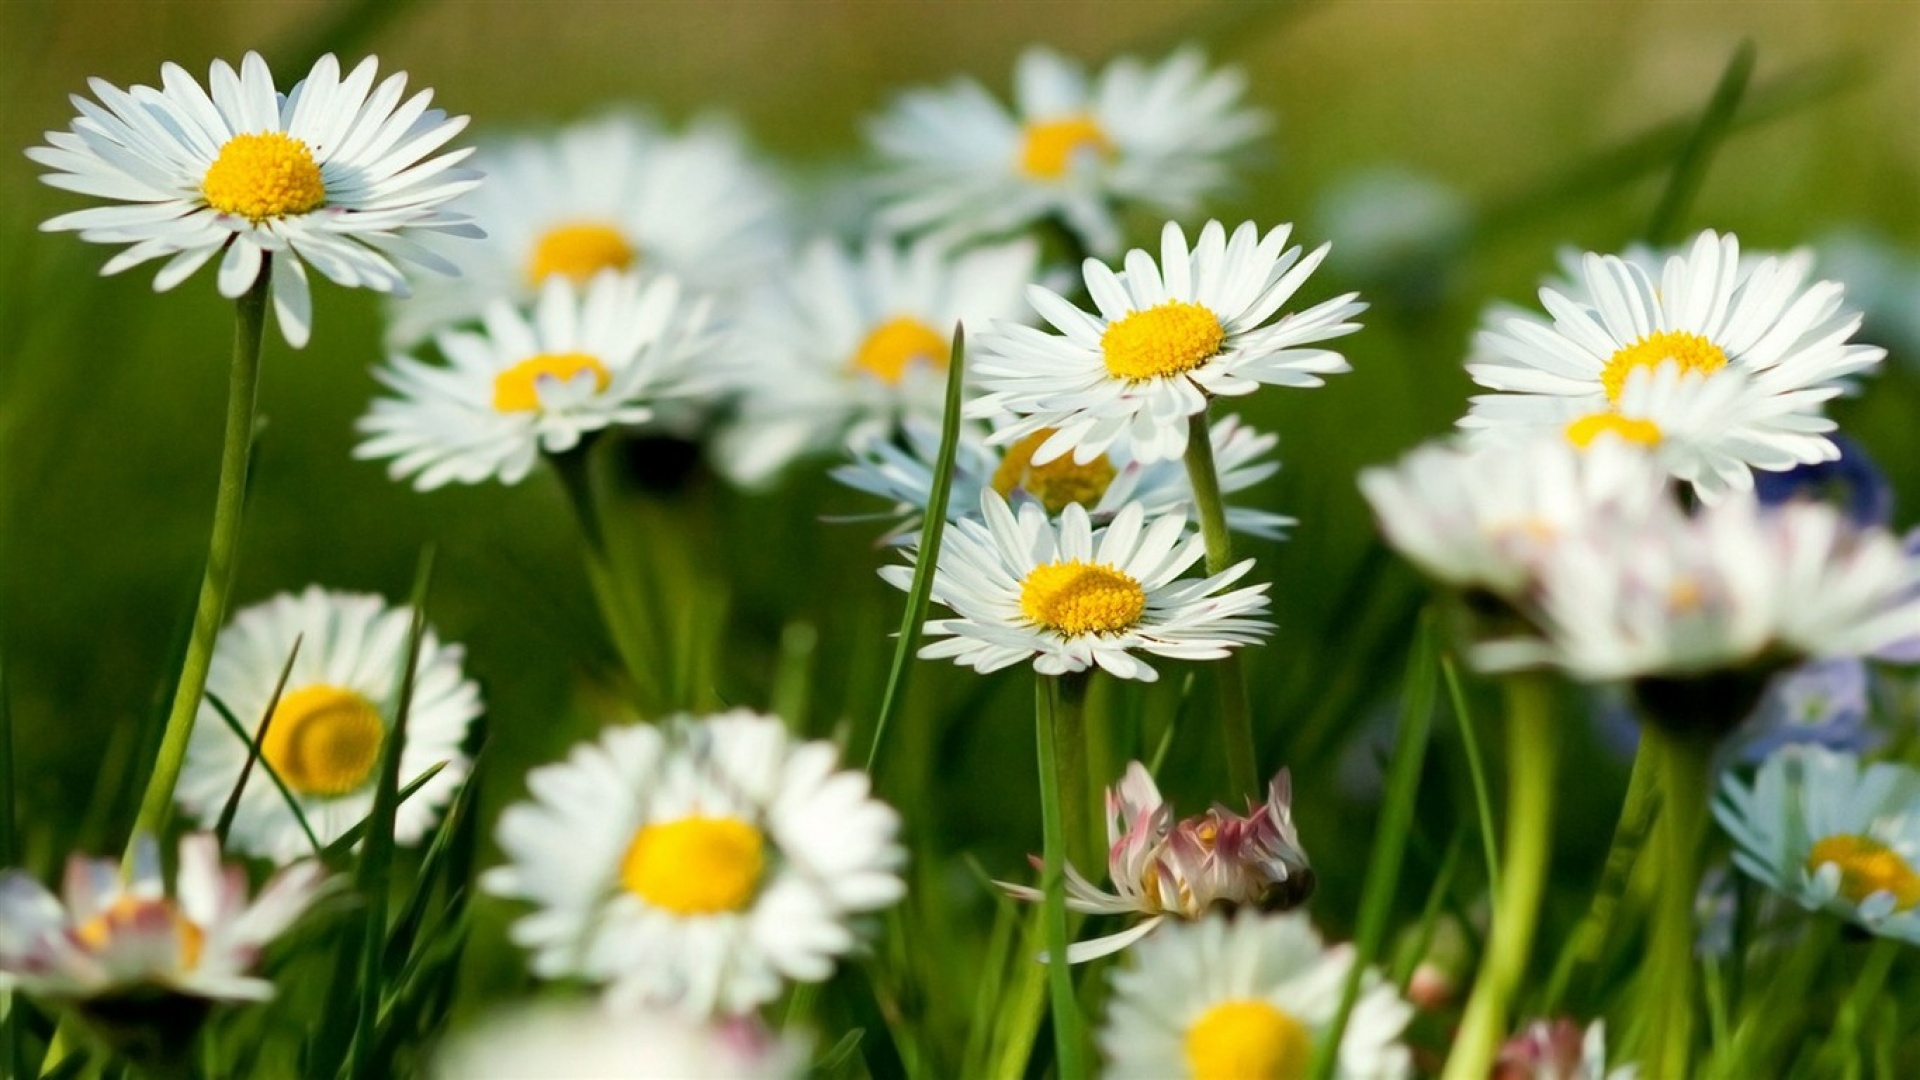 37384 download wallpaper Plants, Flowers, Camomile screensavers and pictures for free